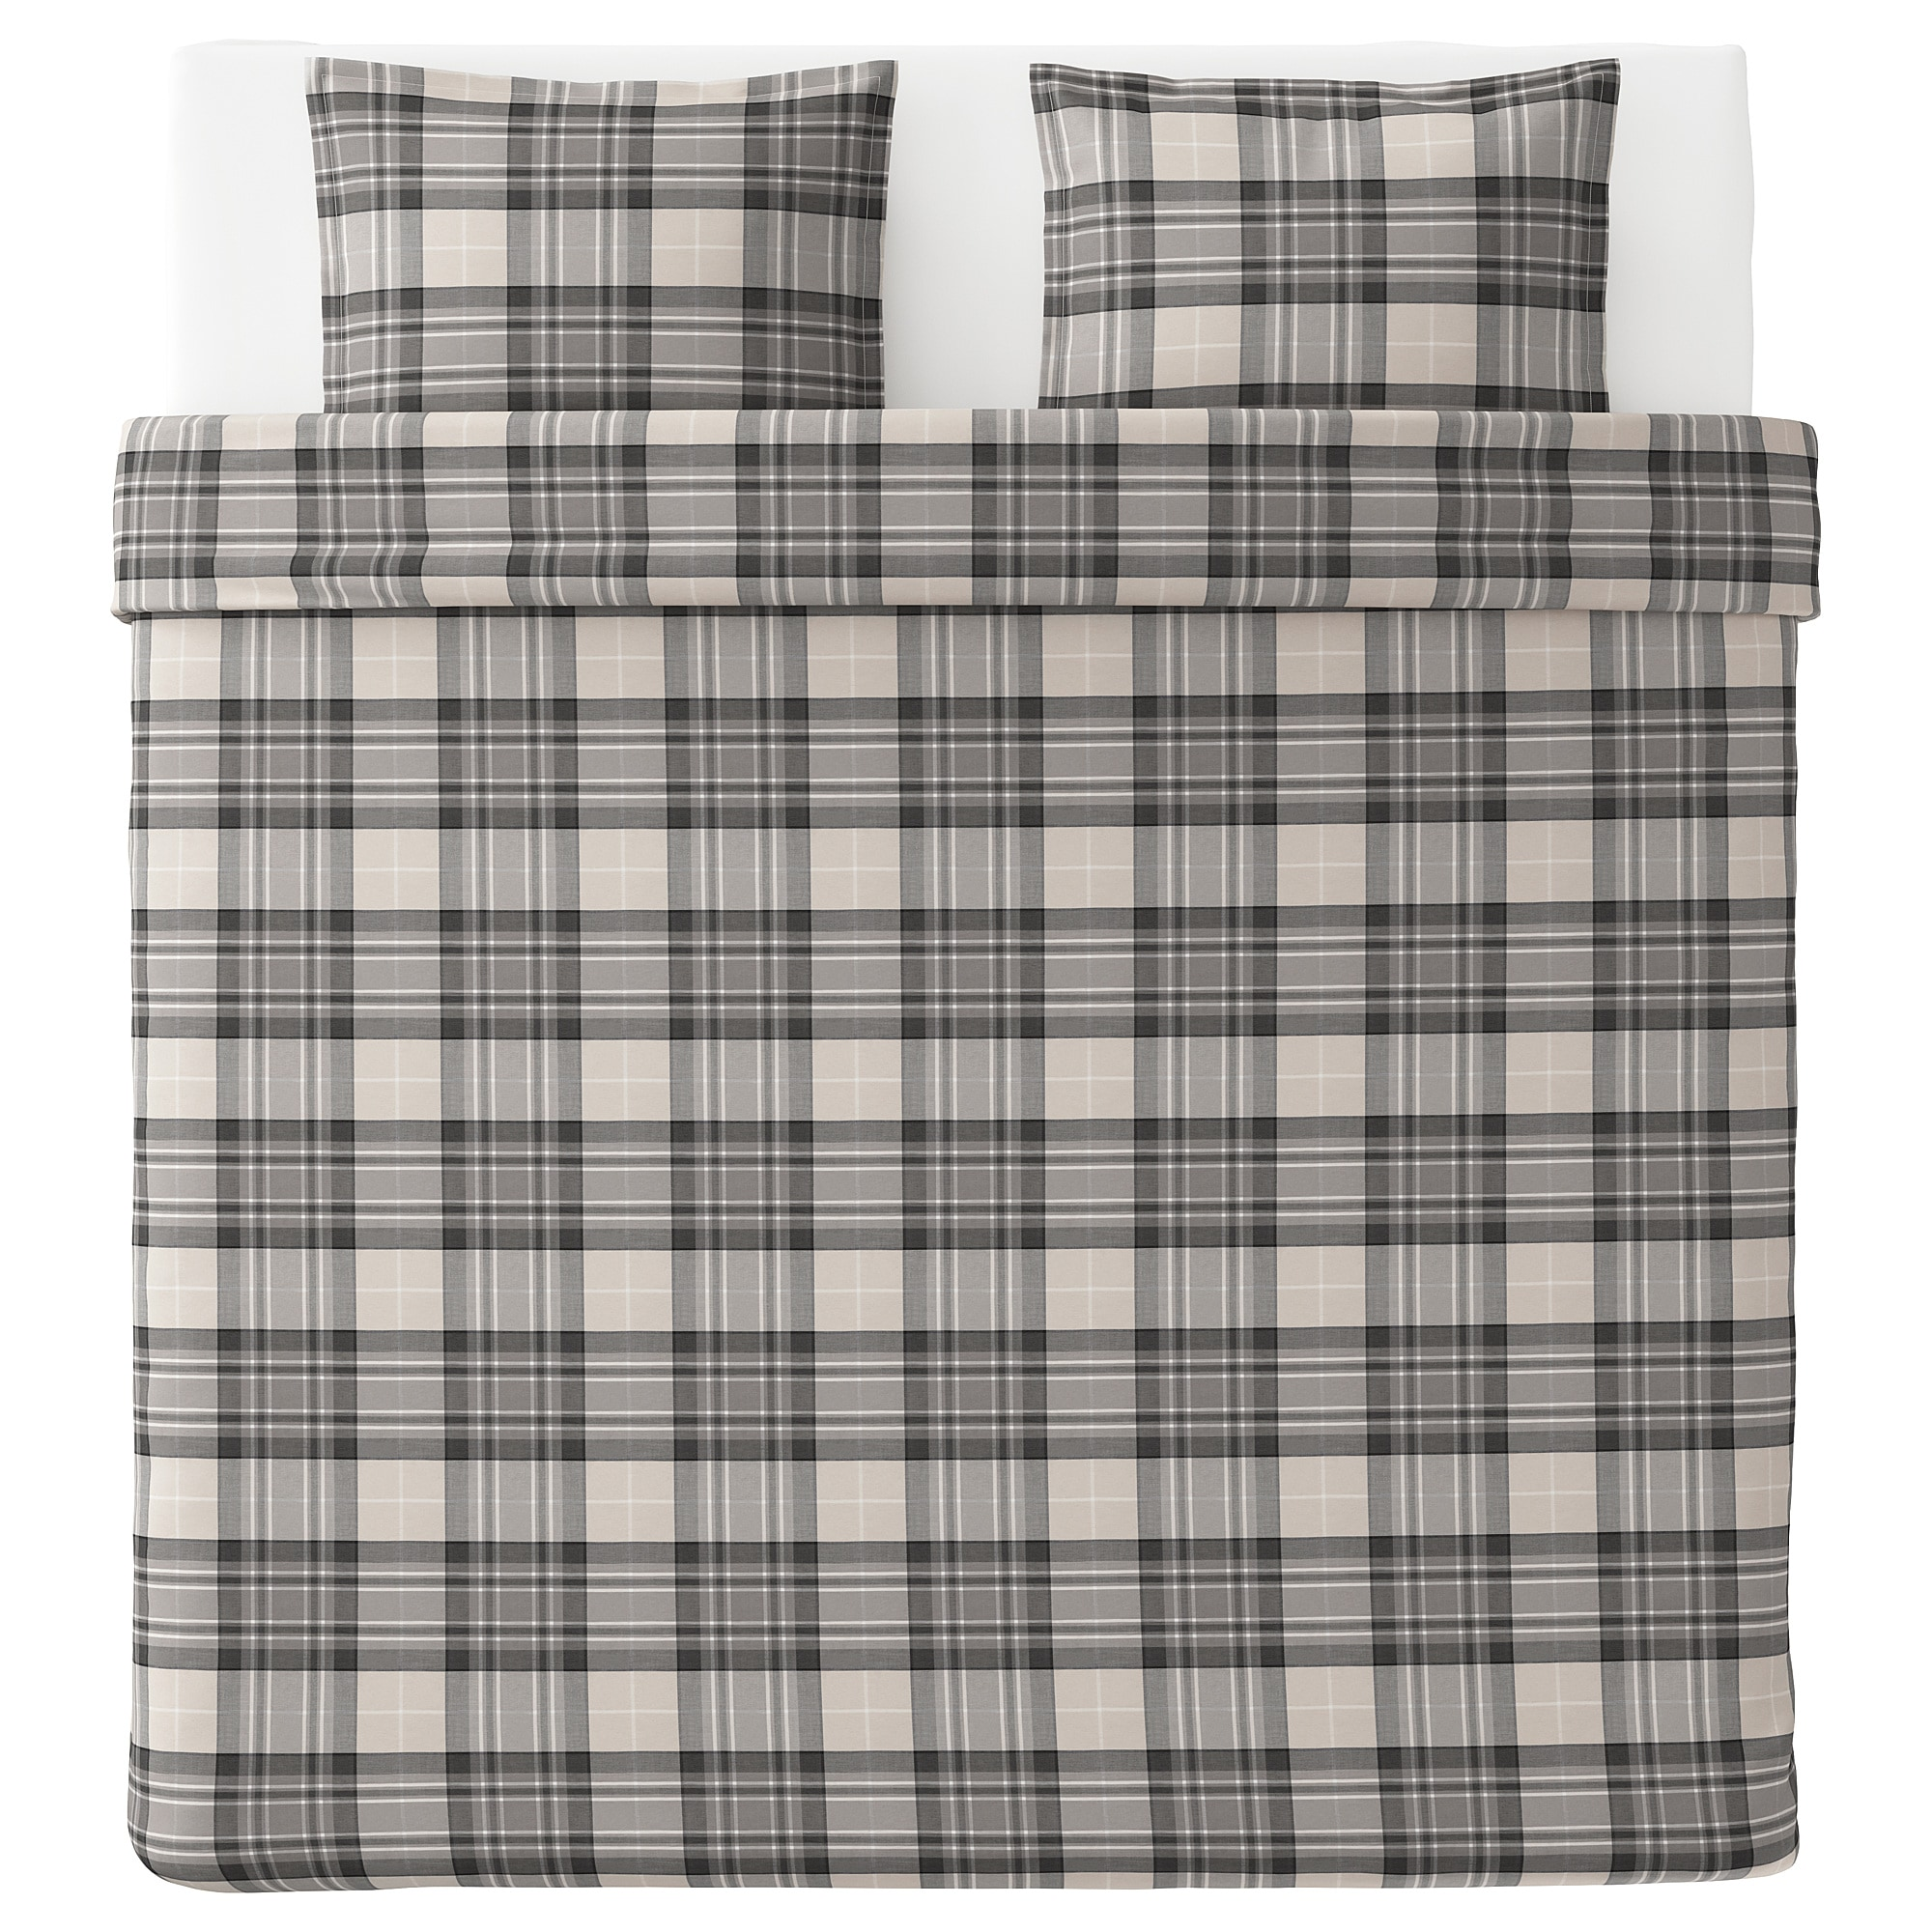 Funda Nordica Ikea 90.Smalruta Quilt Cover And Pillowcase 150x200 50x60 Cm Ikea